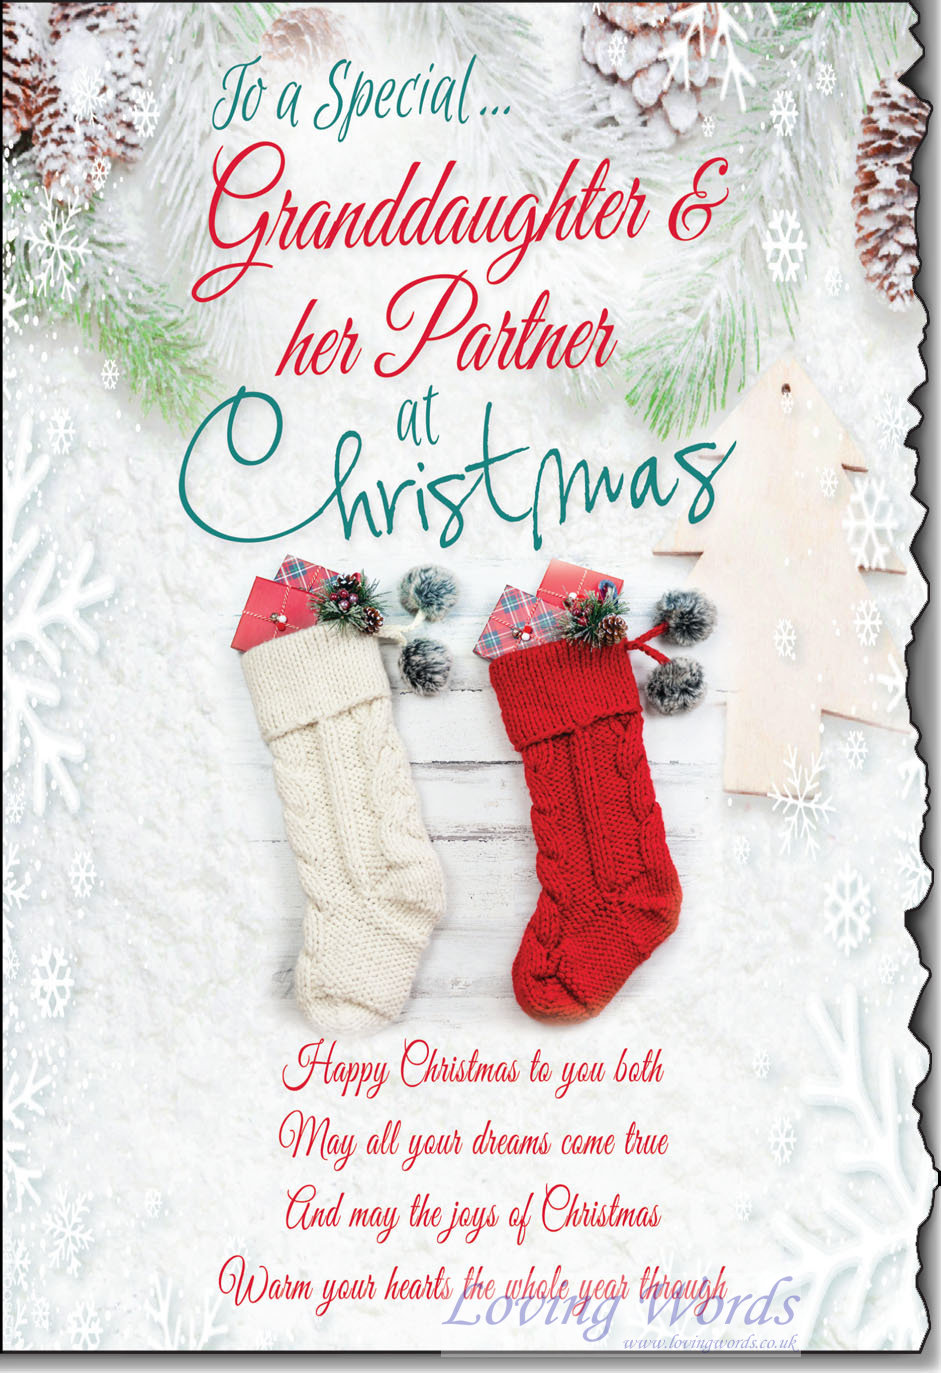 granddaughter and partner at christmas  greeting cards